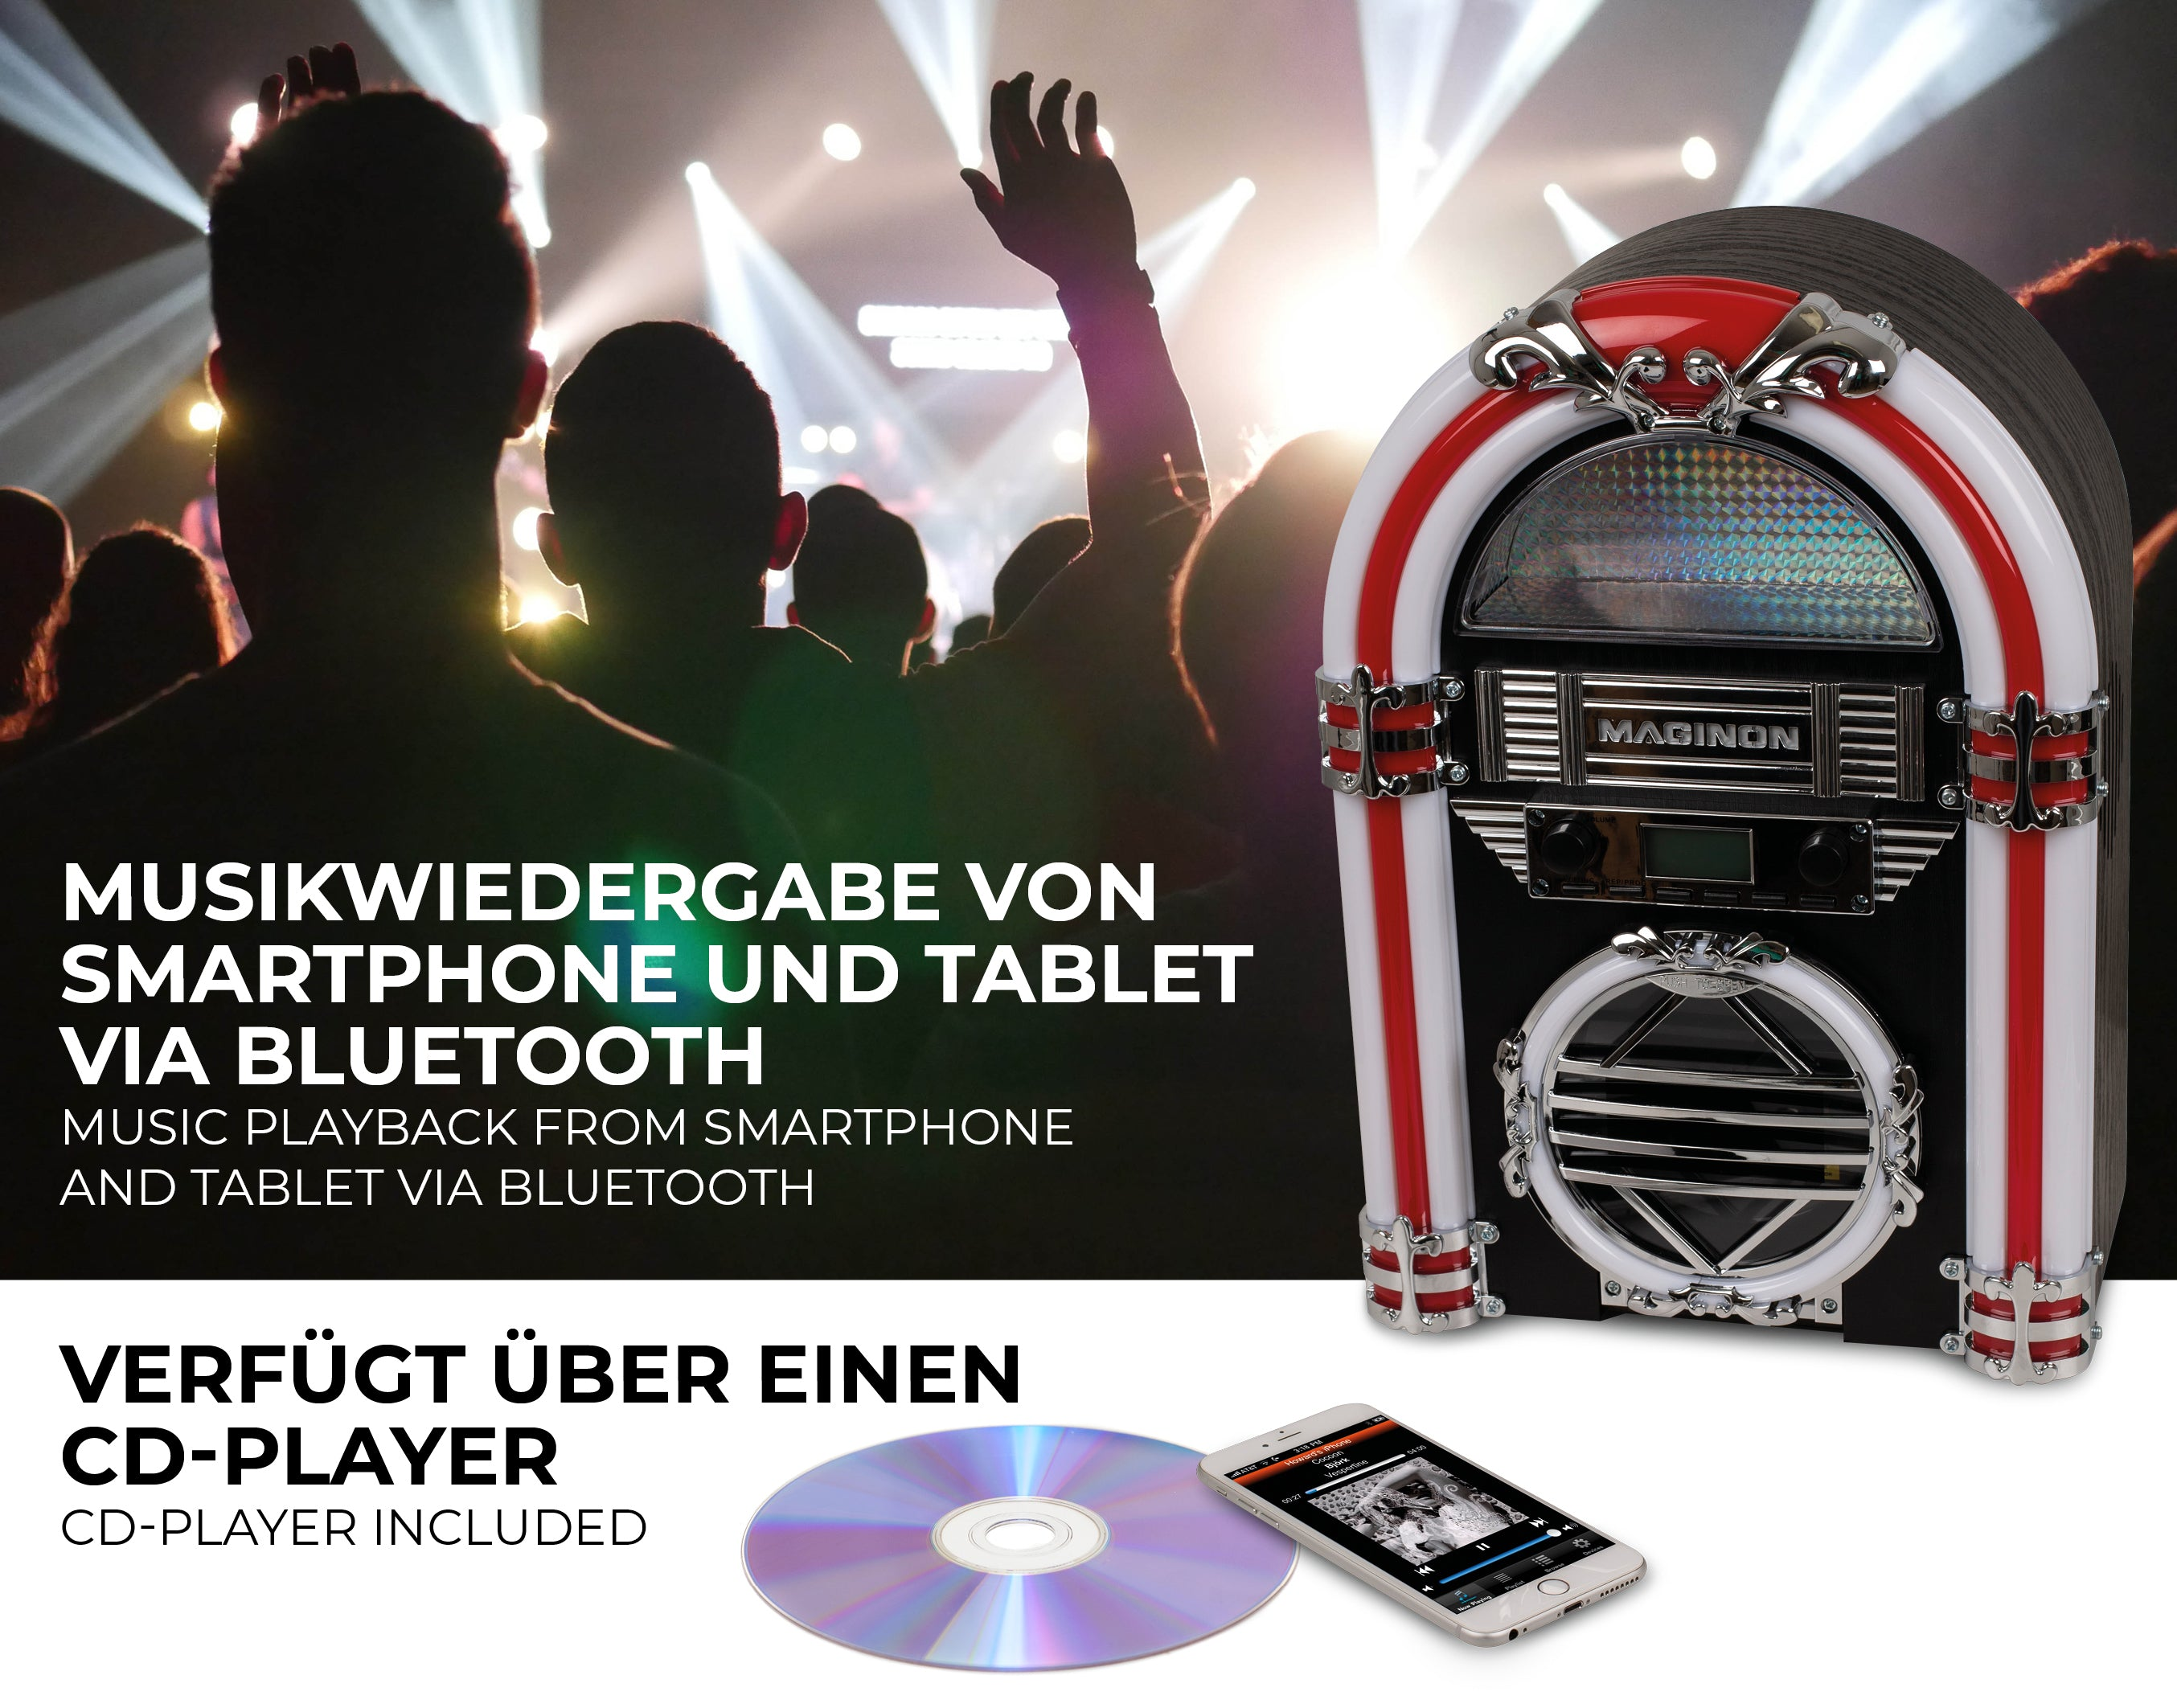 Maginon CJB 10 CD Mini-Jukebox